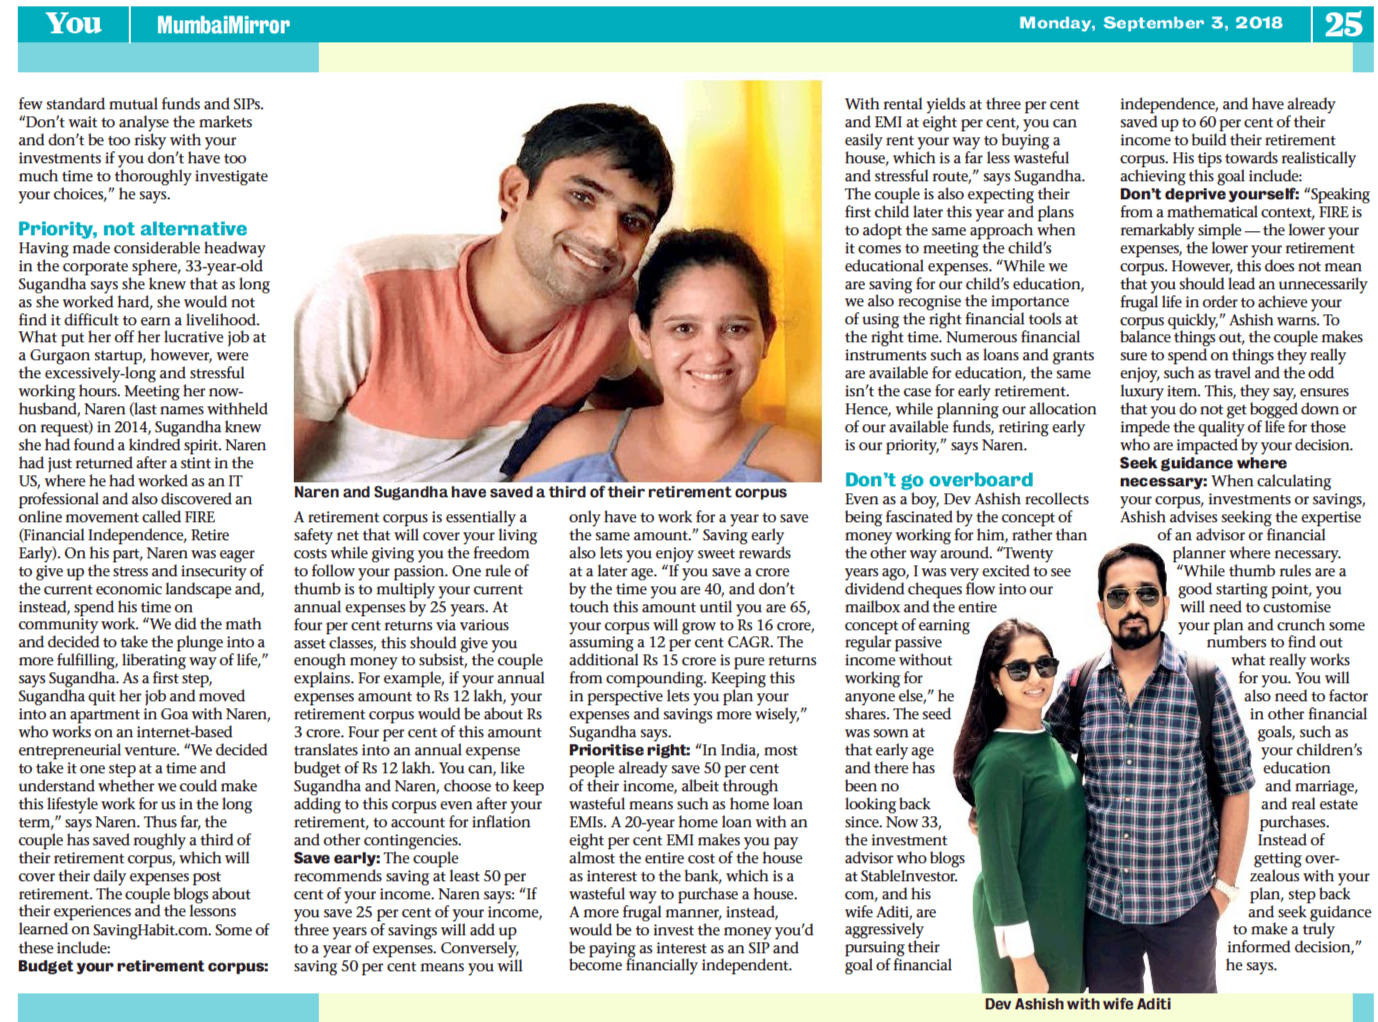 Snapshot of Mumbai Mirror Article Featuring Sugandha & Naren